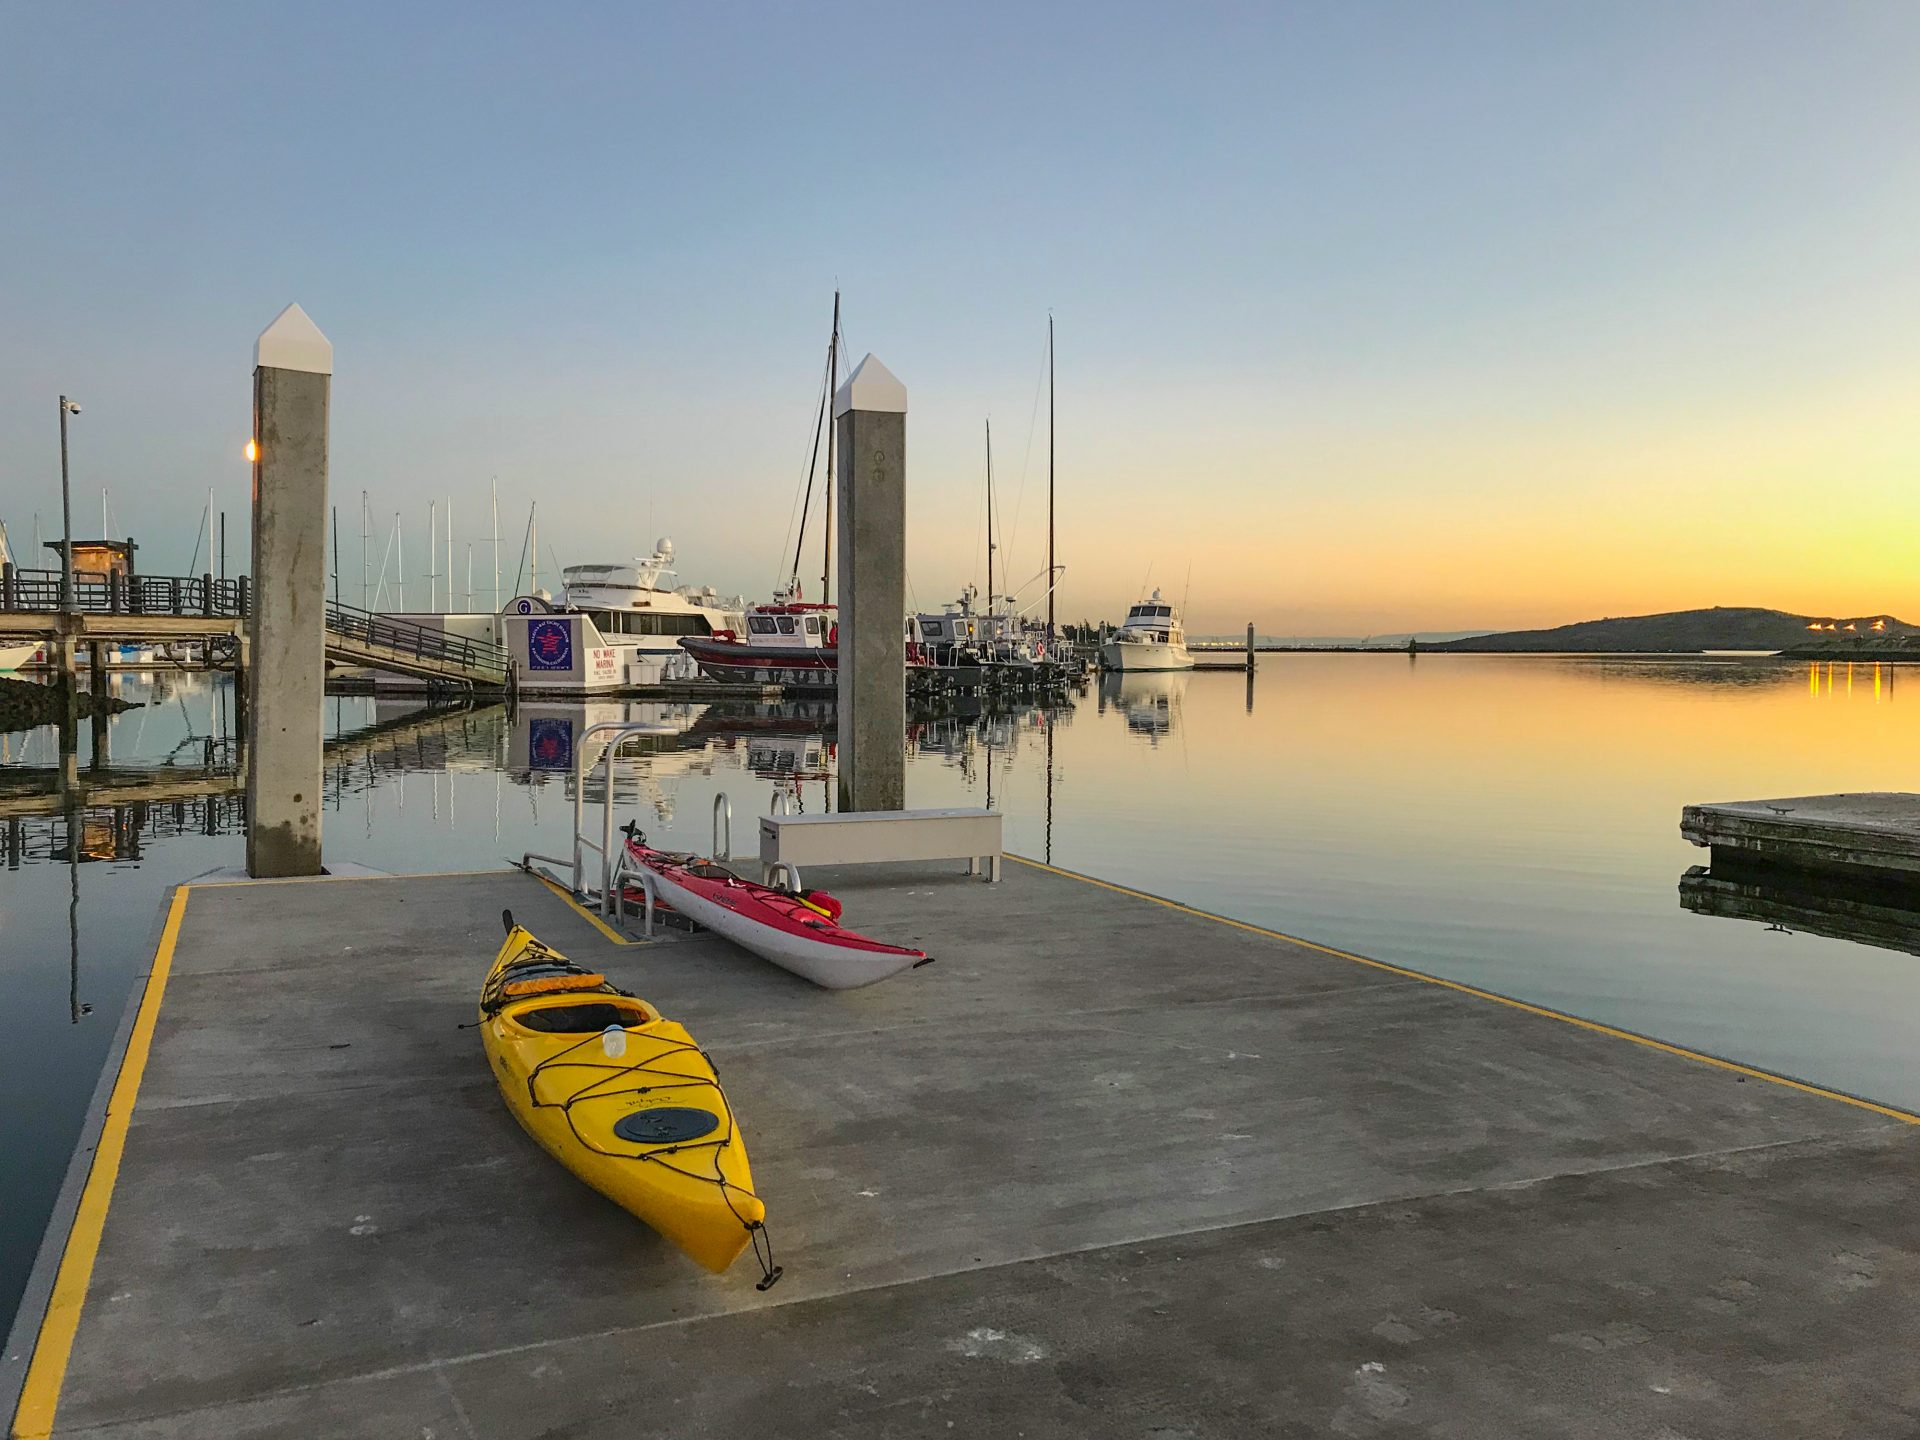 two kayaks on concrete pier, sunset in distance